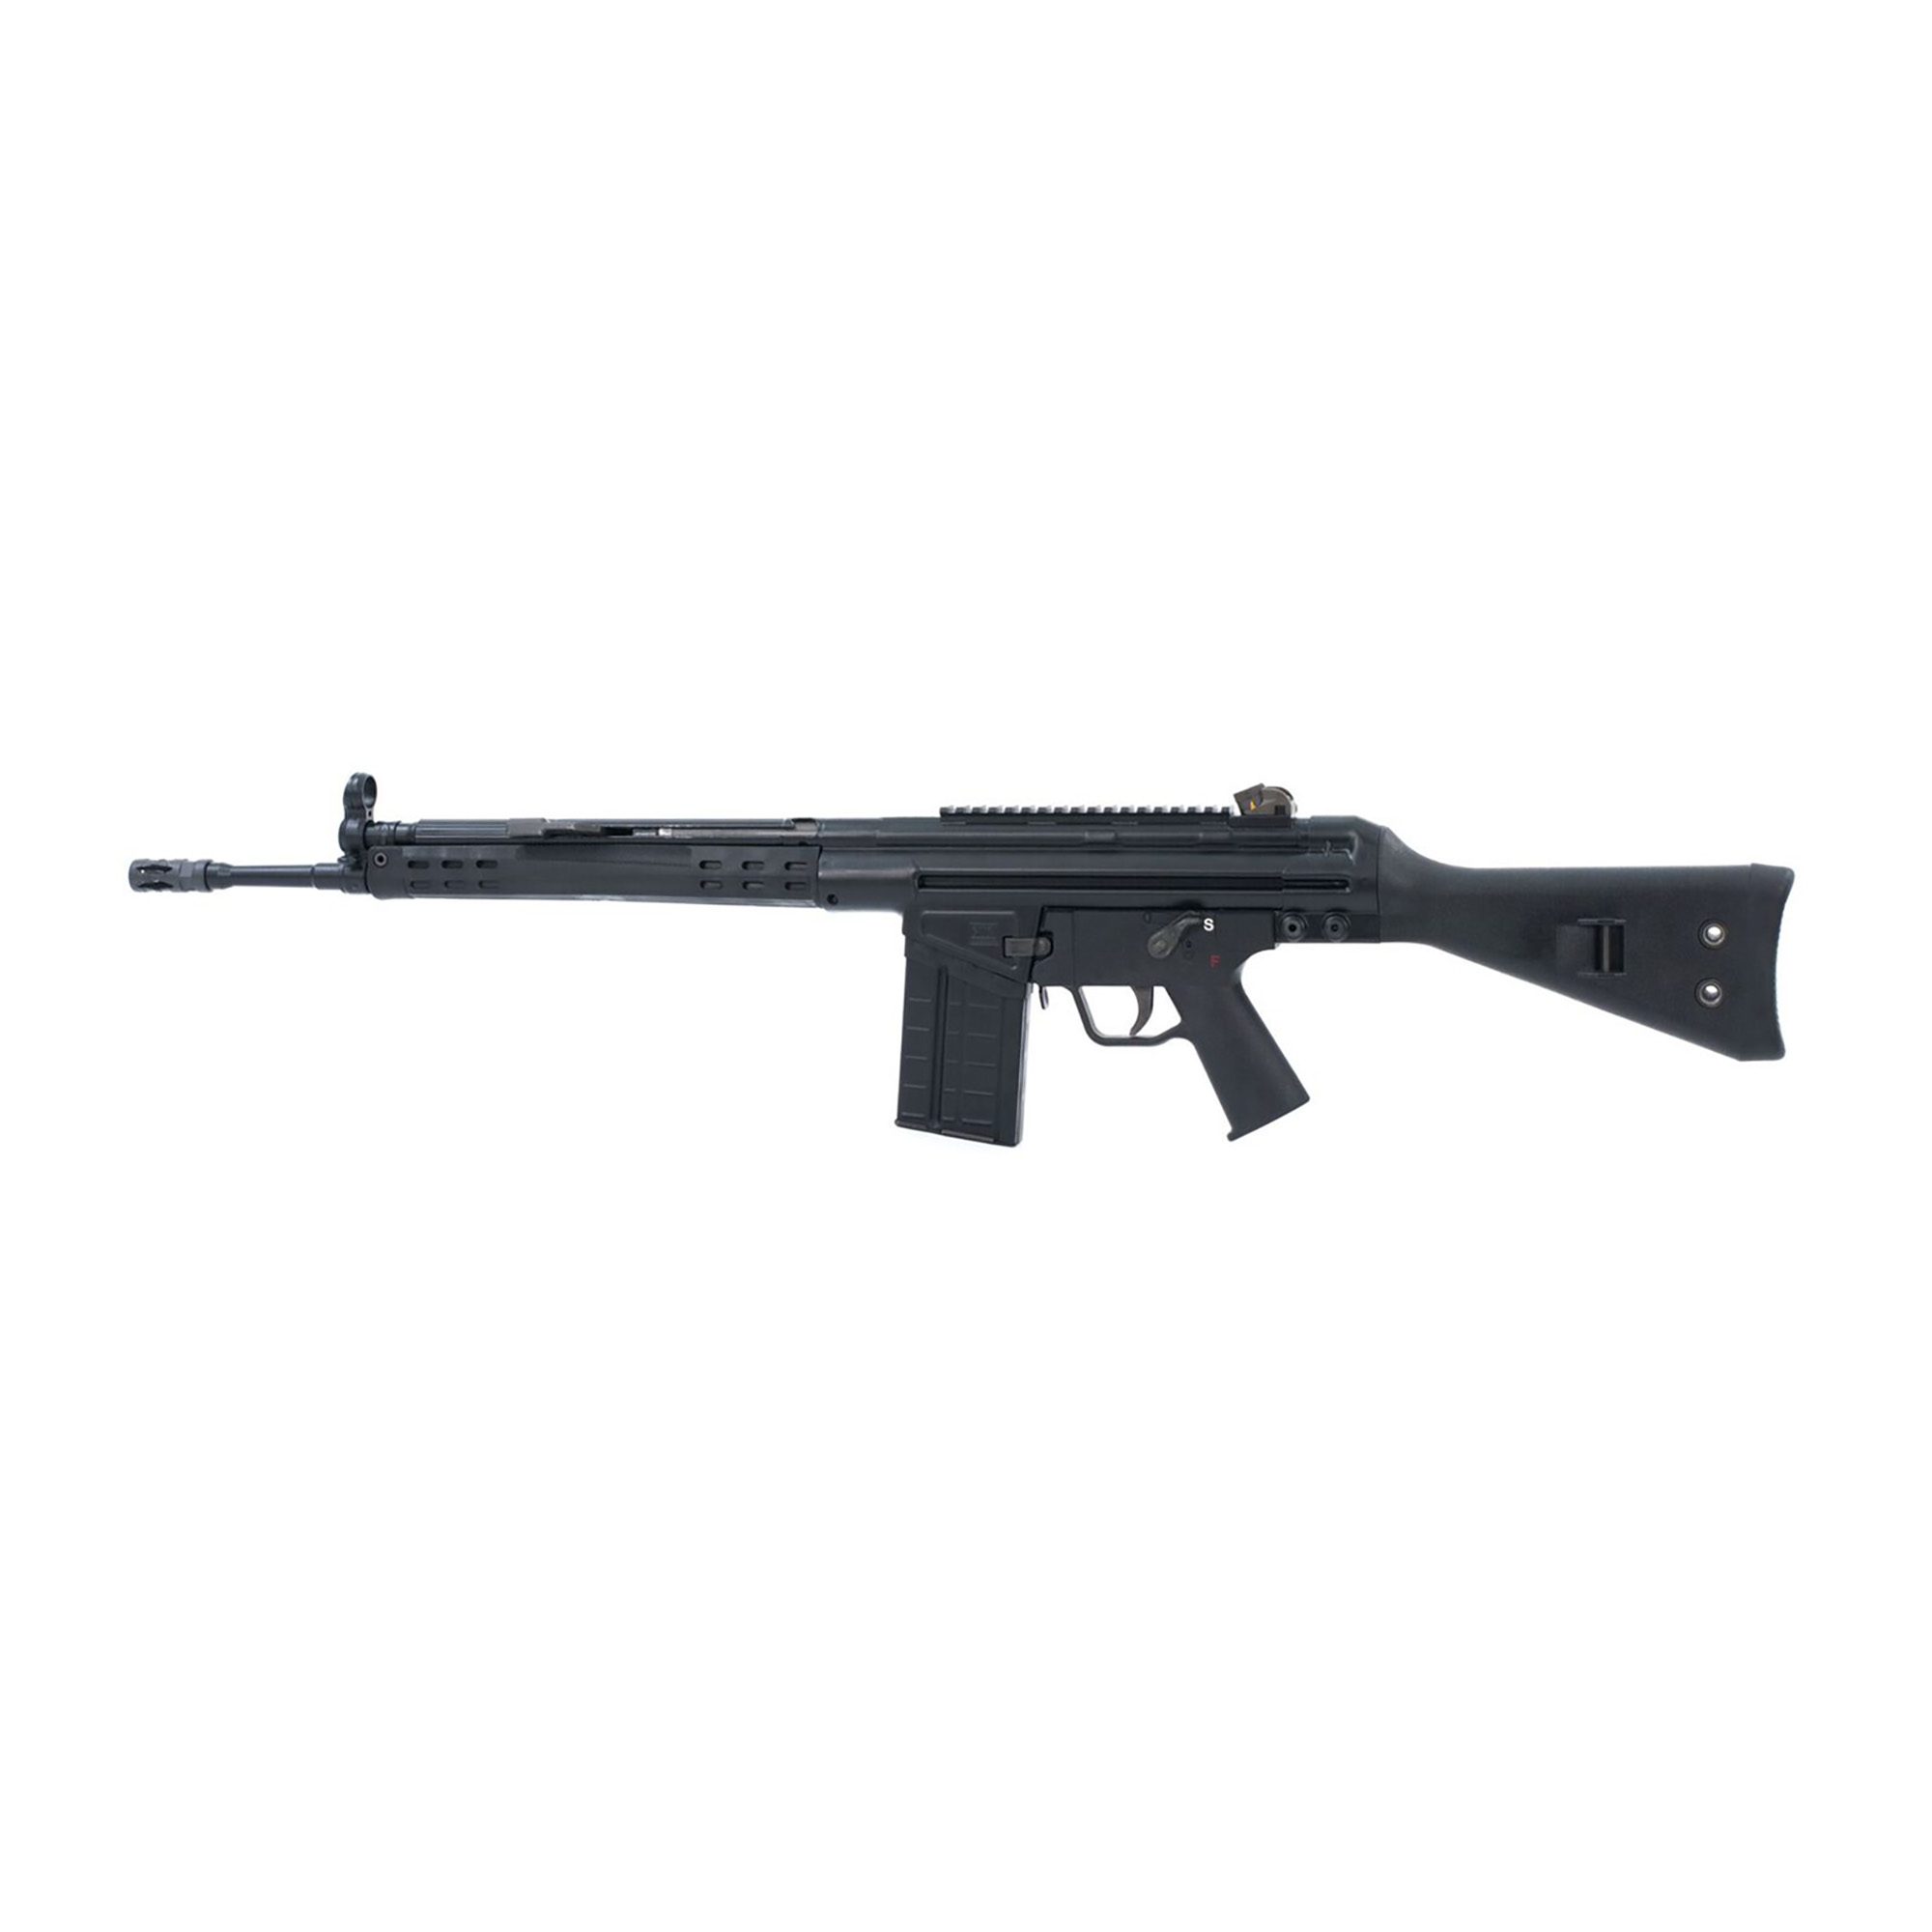 """The A3S rifle features a black powdercoat finish"""" black polymer furniture"""" 18"""" tapered barrel and polymer navy lower. The precision-welded top rail allows the addition of your favorite scope or you can use the traditional iron sights (included)."""